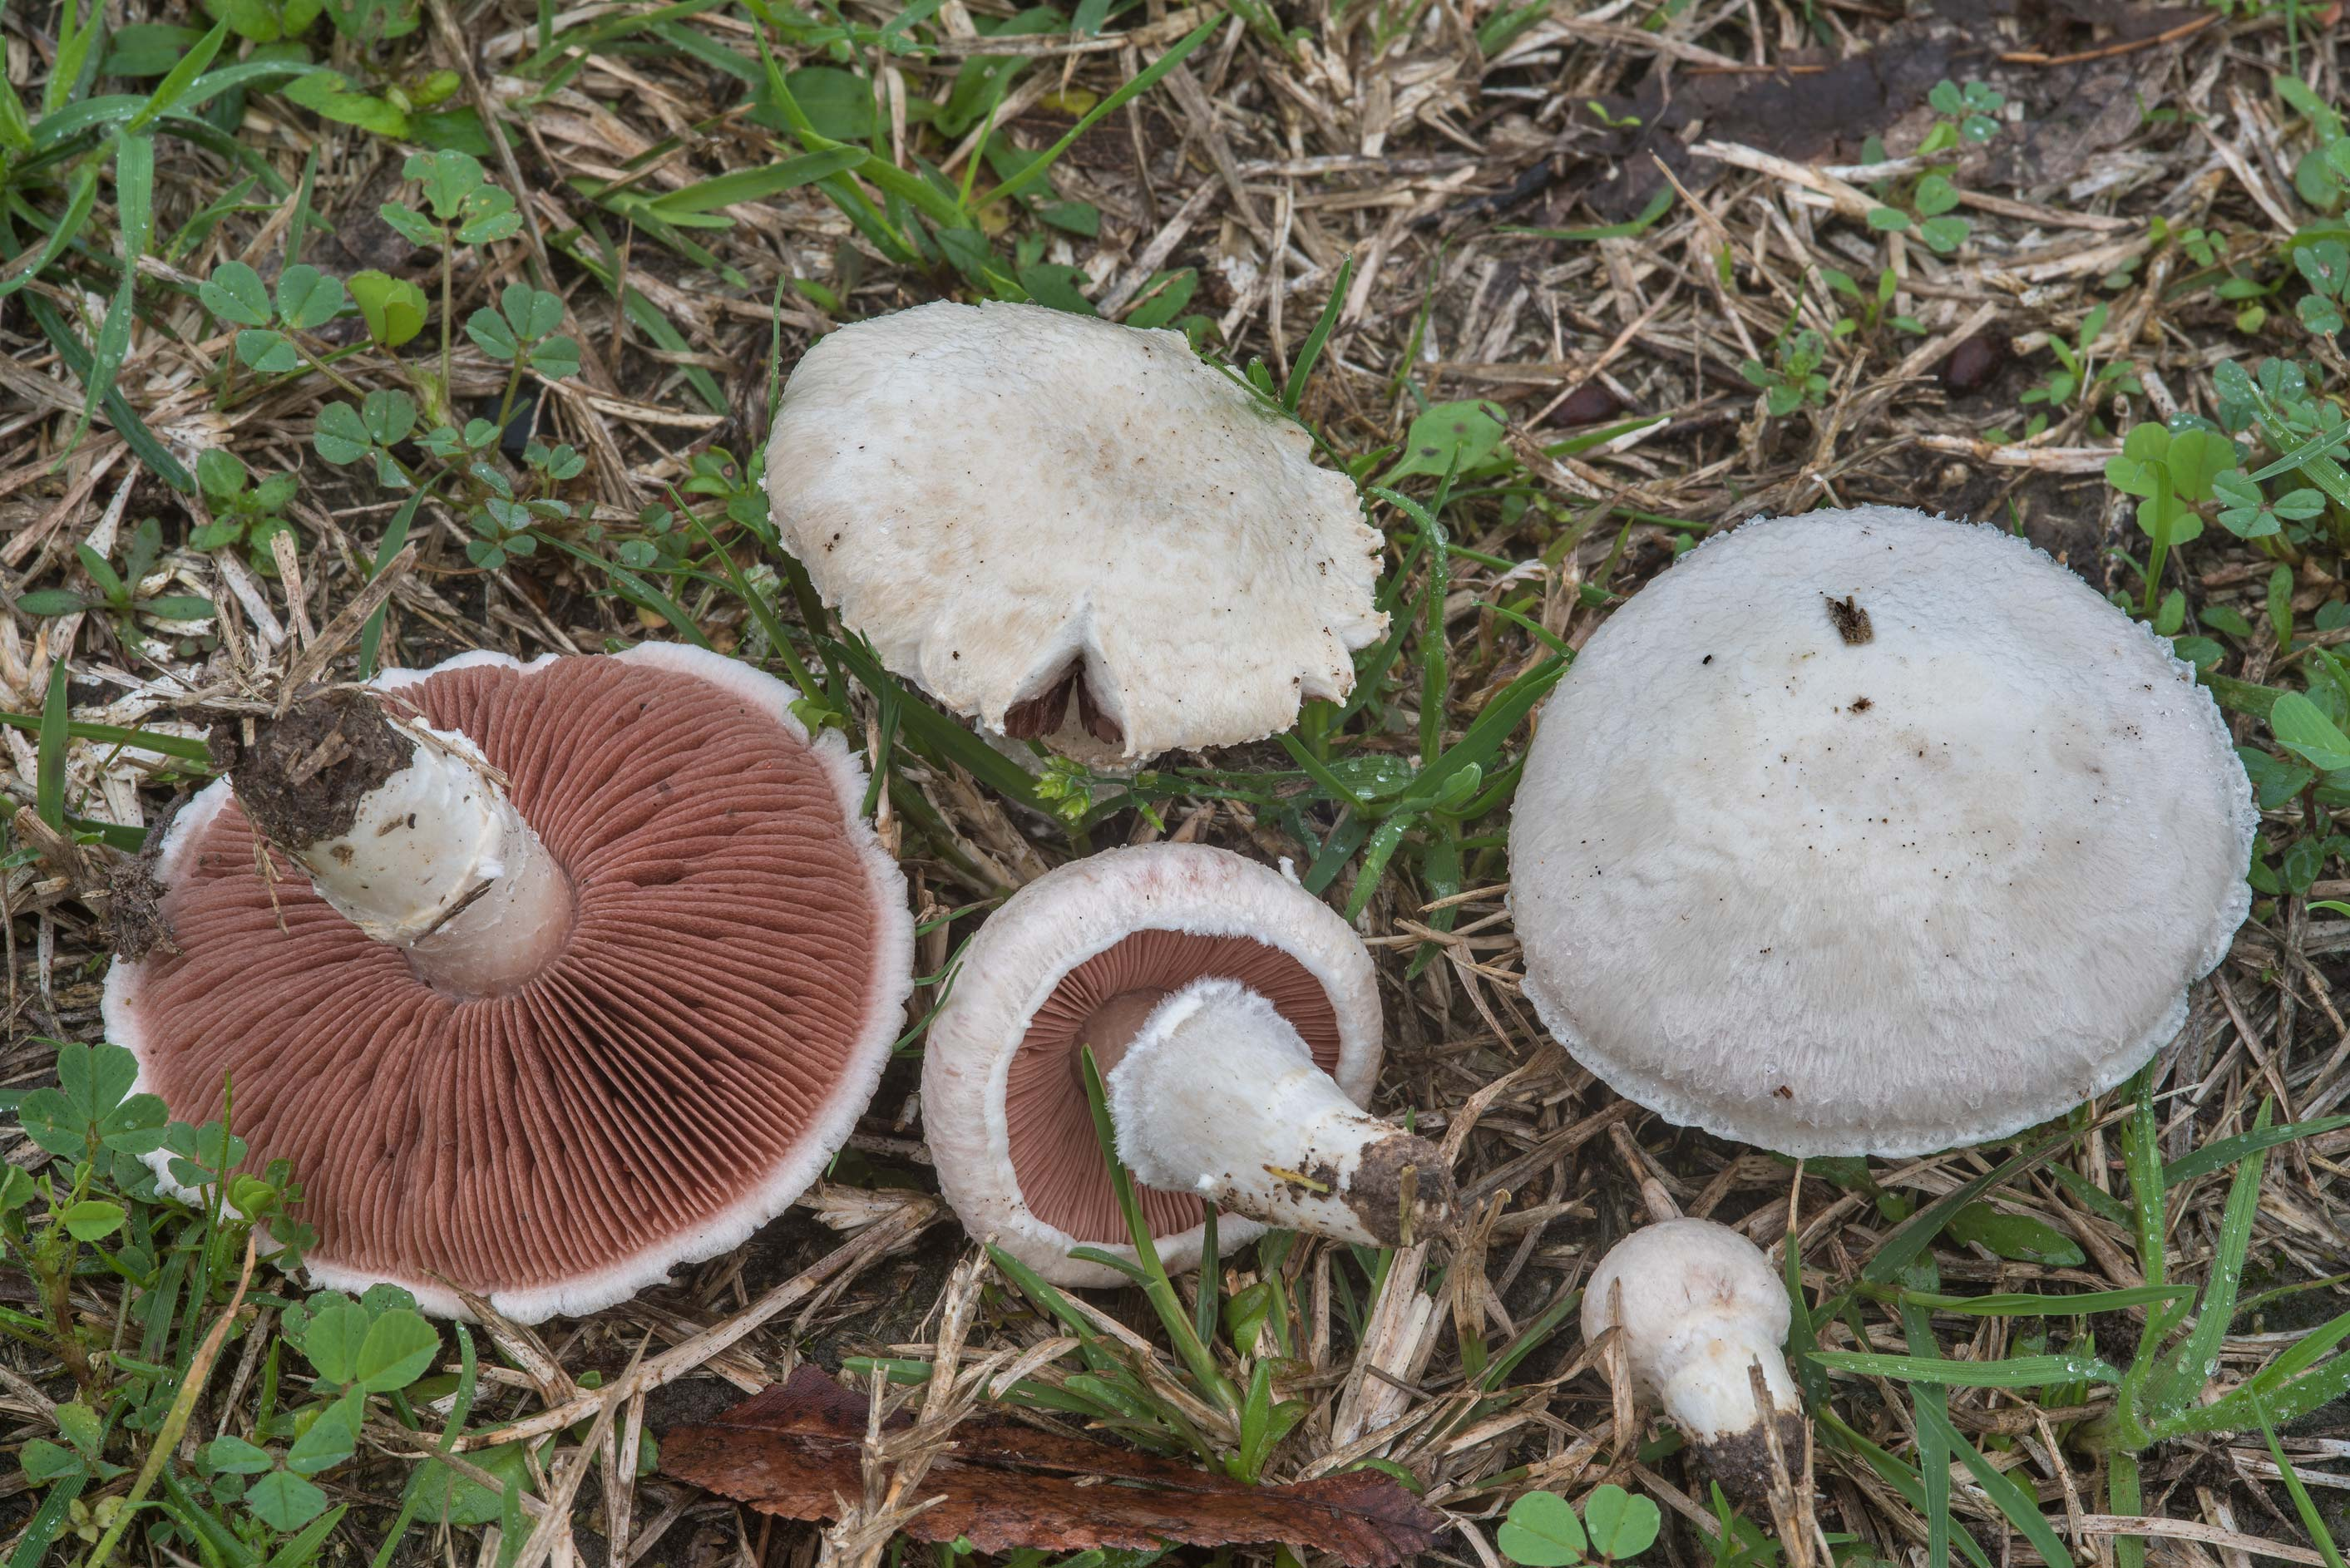 Meadow mushrooms (Agaricus campestris) in Hensel Park. College Station, Texas